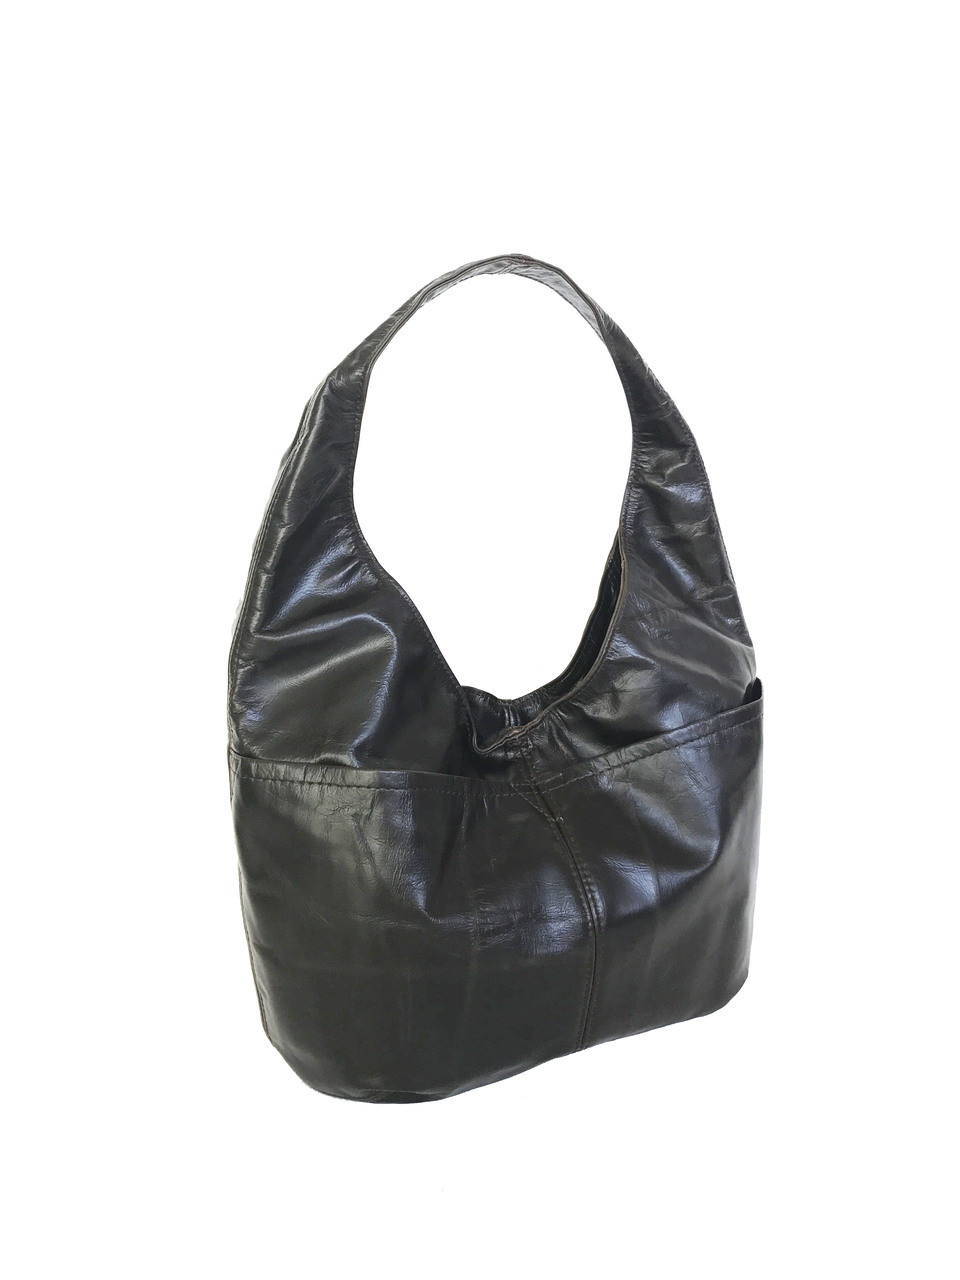 Distressed Leather Hobo Bag w  Pockets, Trendy Classic Bags, Vintage style,  Alicia - Fgalaze Genuine Leather Bags   Accessories 56b404fae1